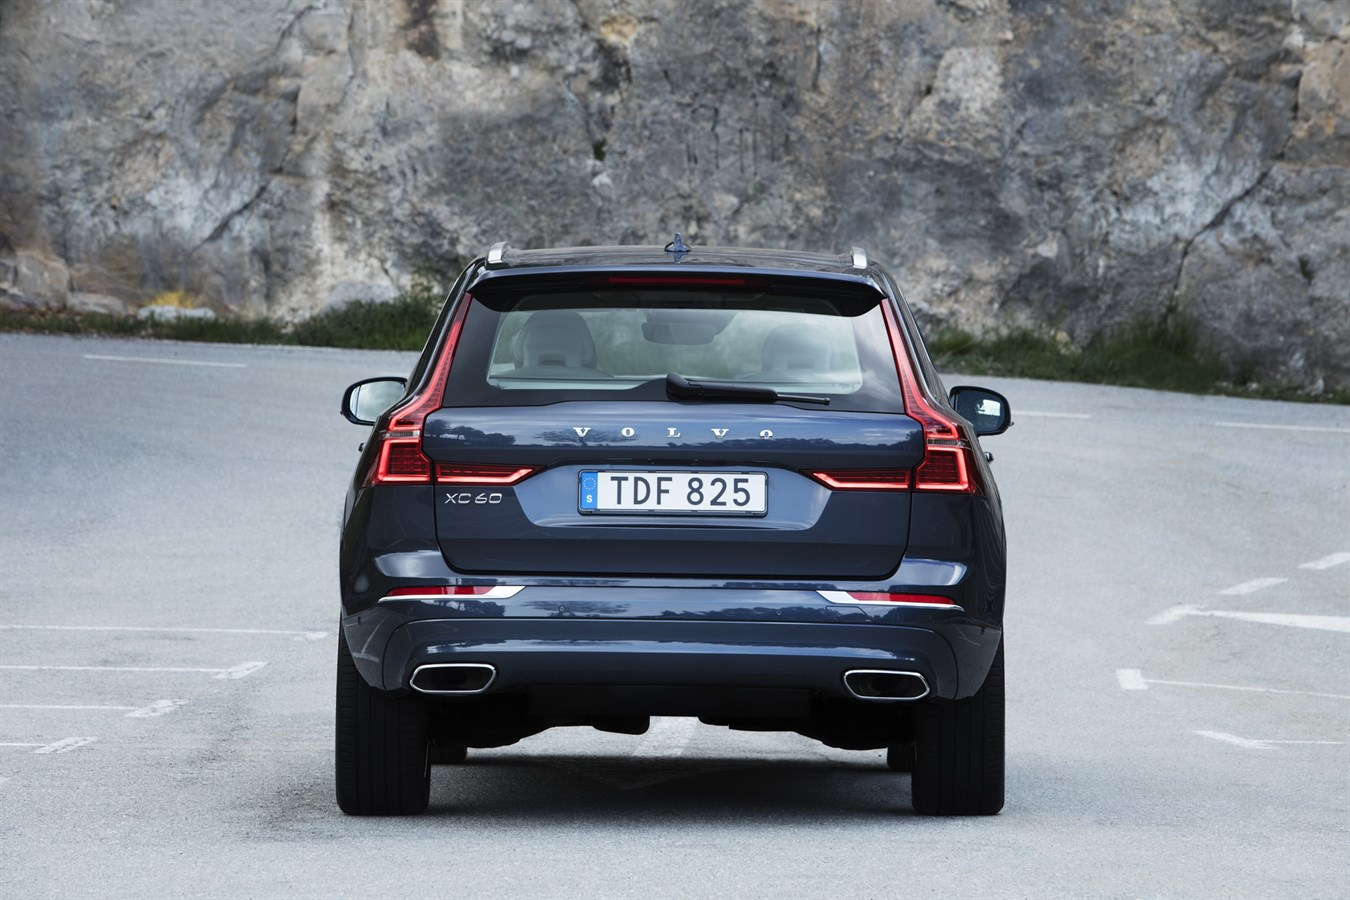 Volvo Xc90 Commercial >> The new Volvo XC60 T6 - Volvo Cars Global Media Newsroom